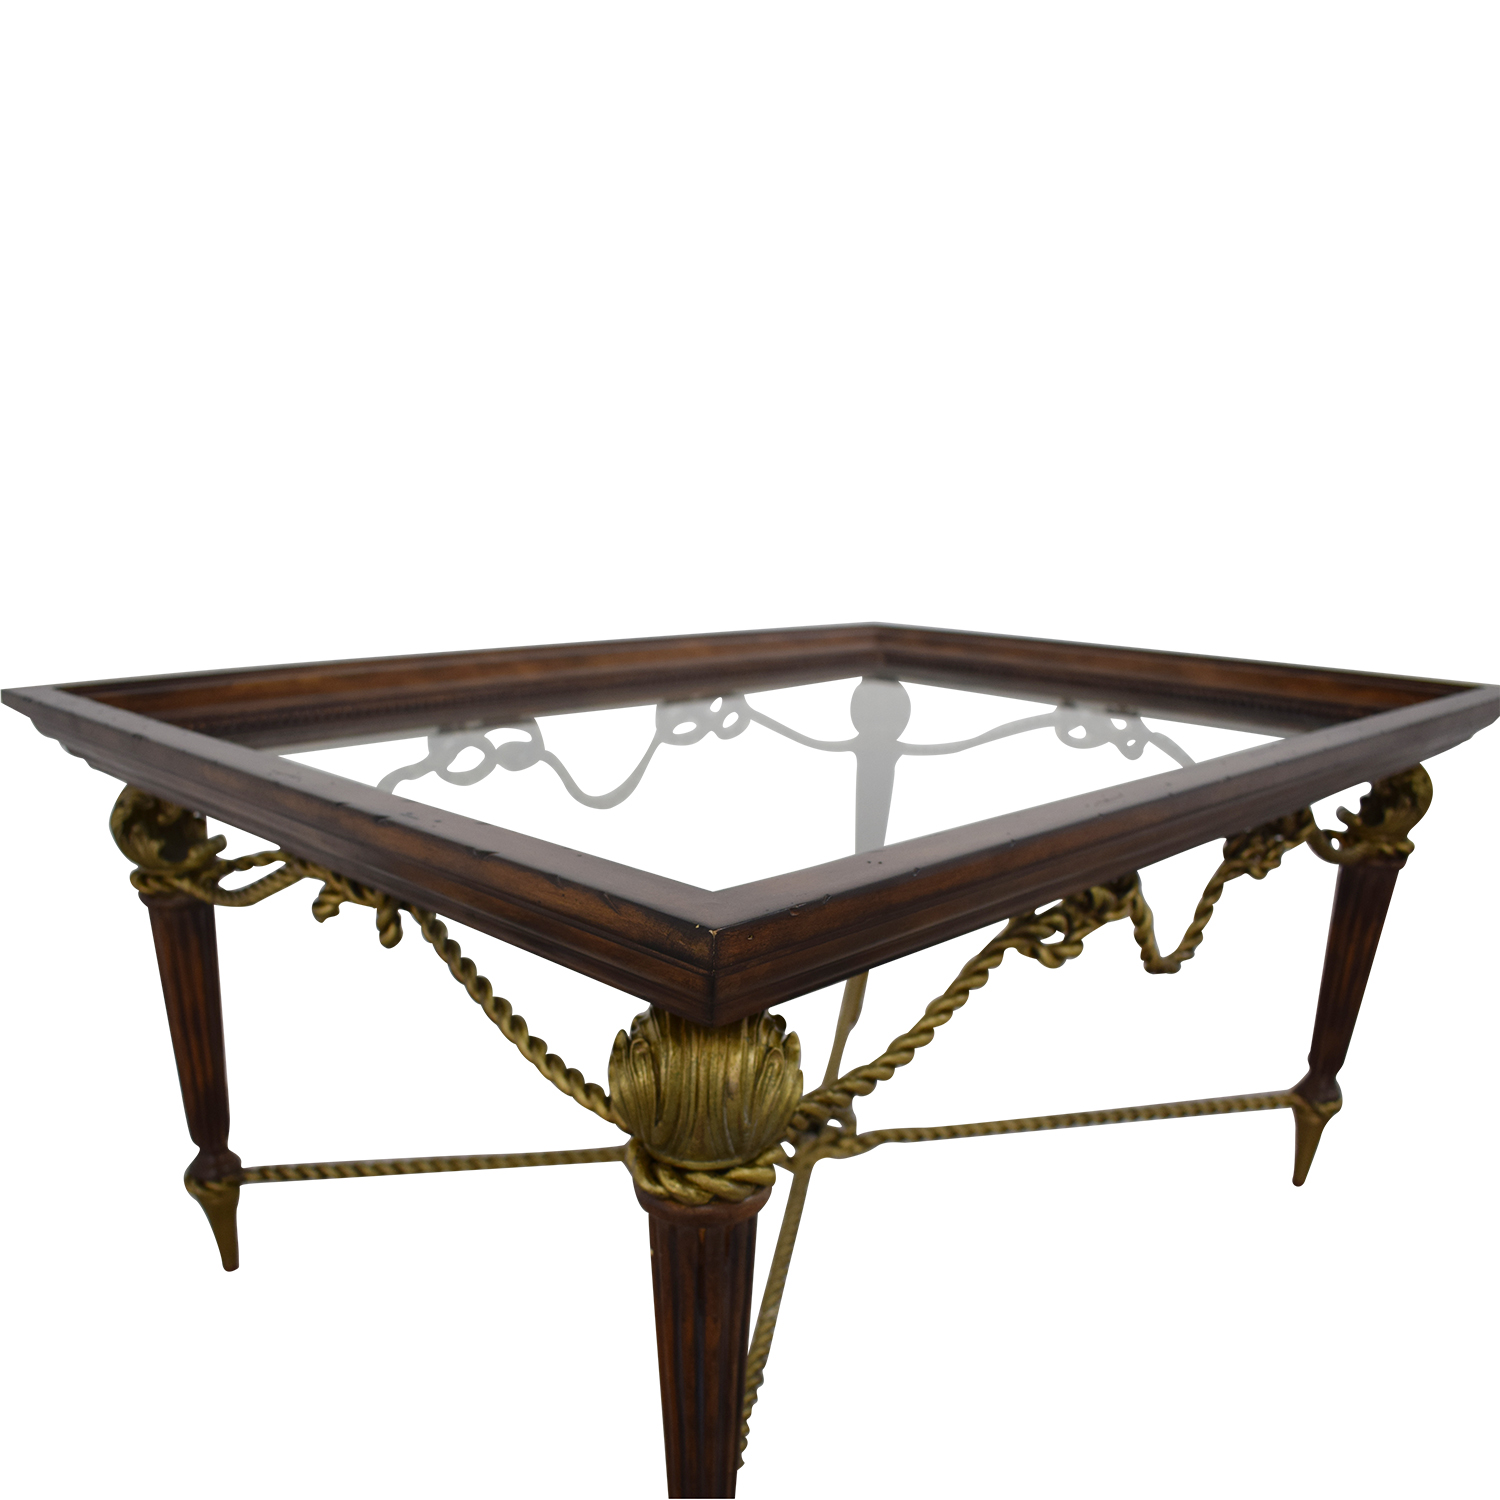 La Barge La Barge Glass Dining Table second hand